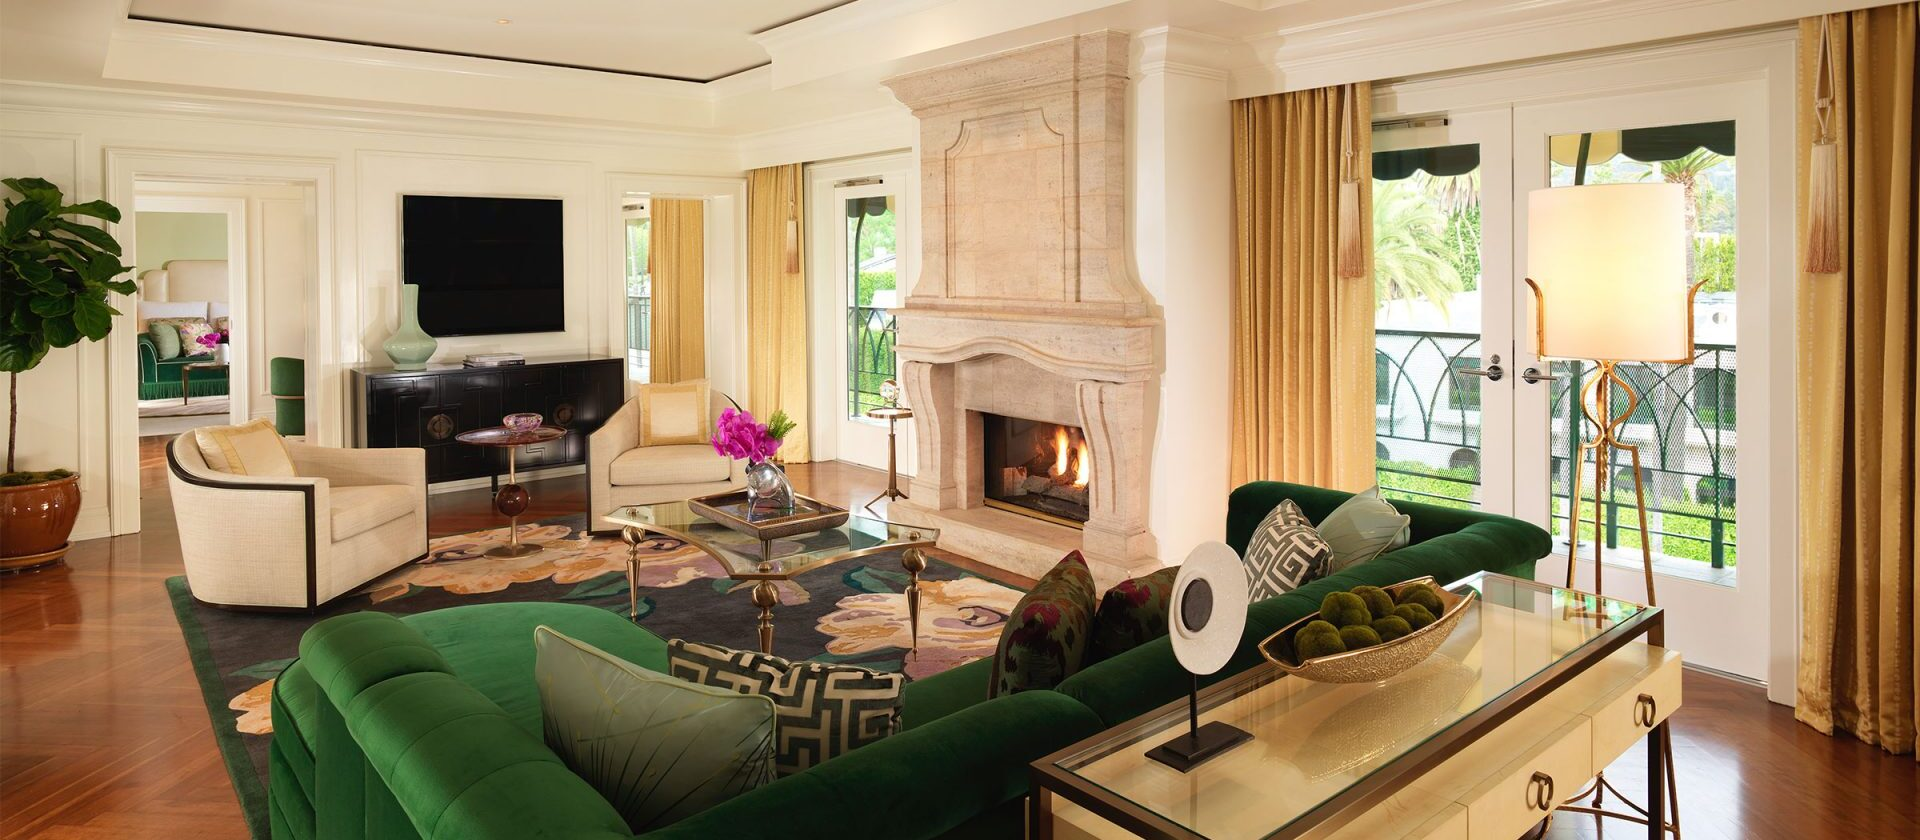 Rooms Amp Suites At The Beverly Hills Hotel Dorchester